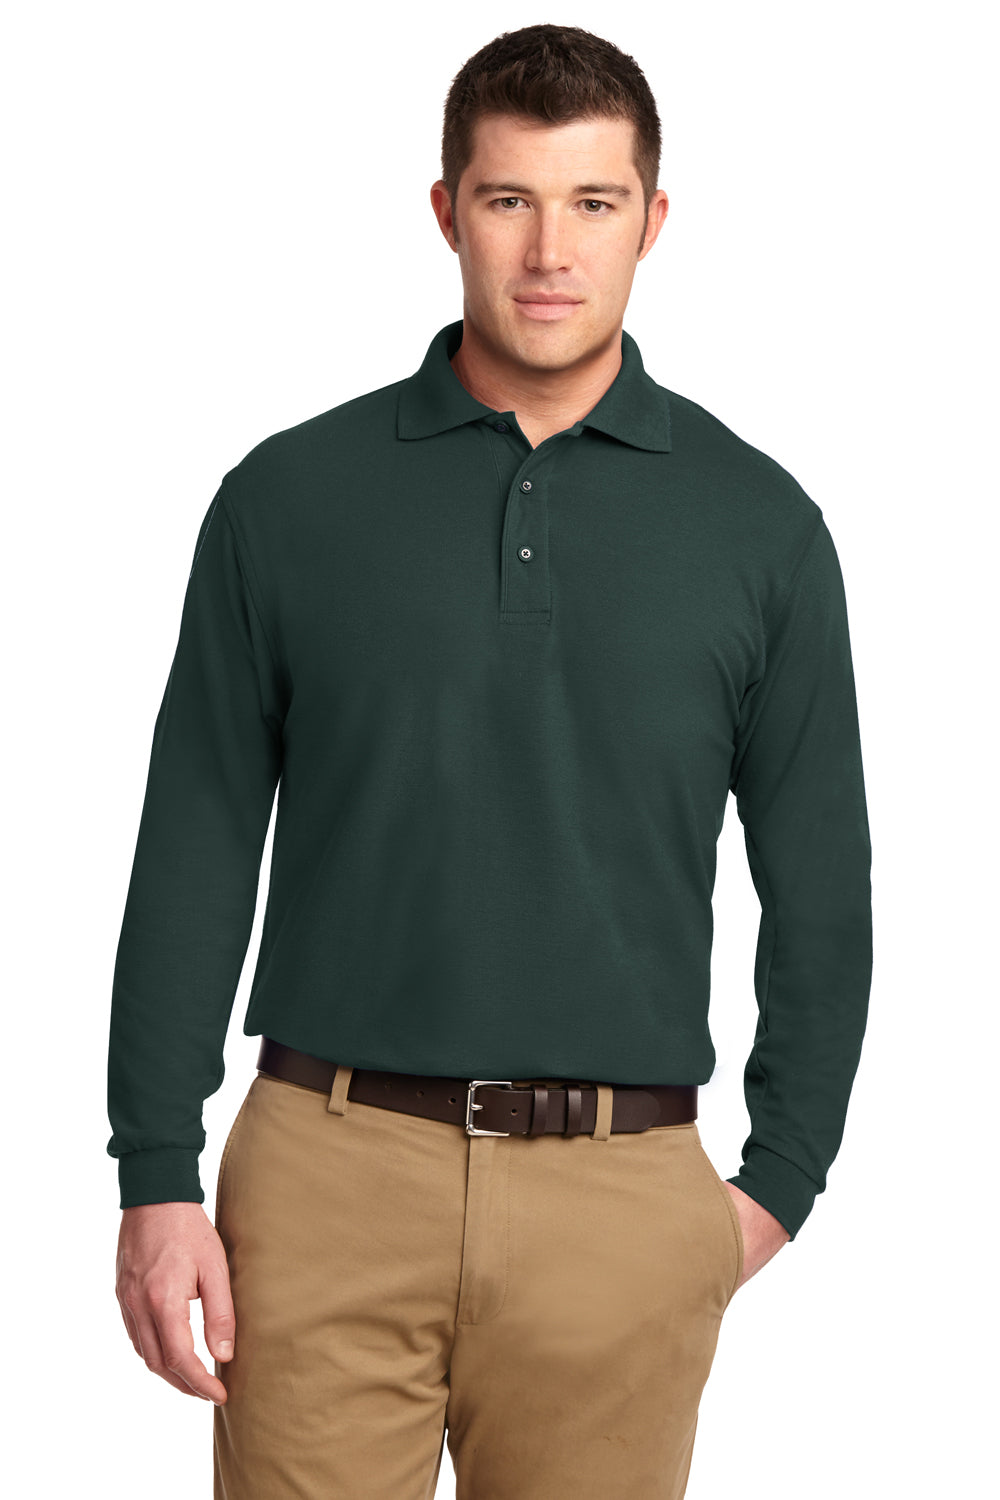 Port Authority Mens Silk Touch Wrinkle Resistant Long Sleeve Polo Shirt - Dark Green